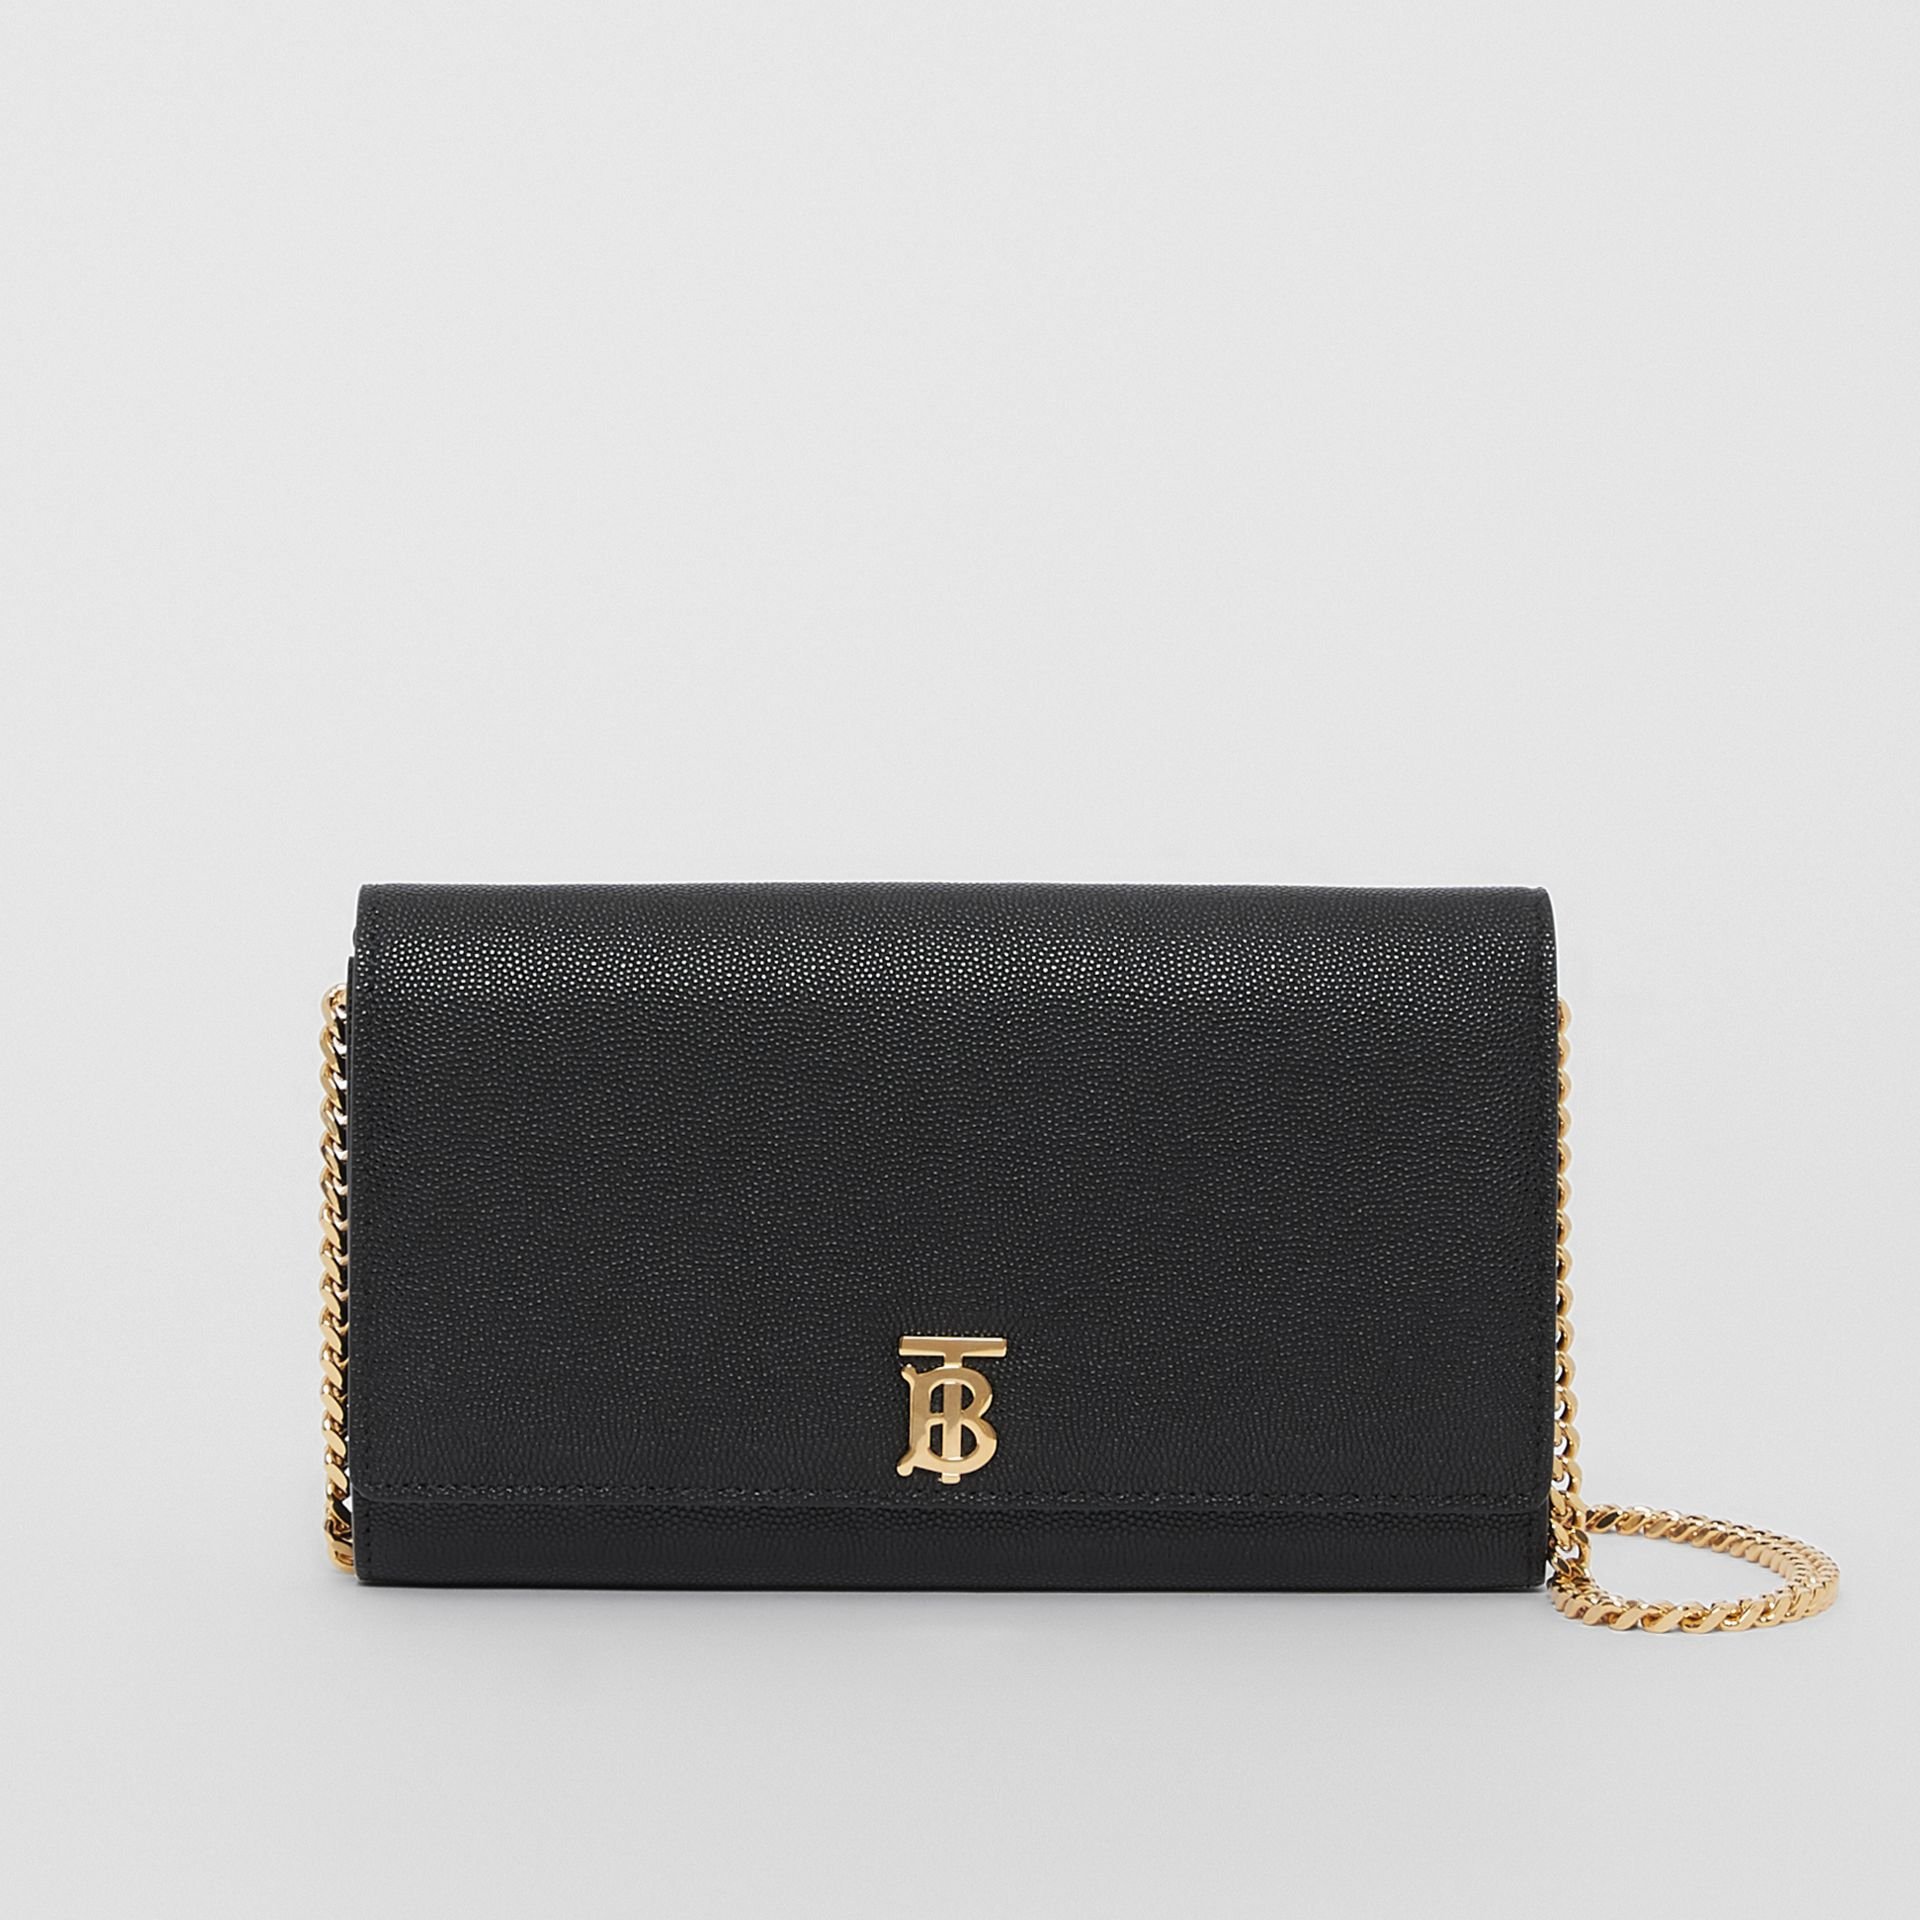 Monogram Motif Leather Wallet with Detachable Strap in Black - Women | Burberry United Kingdom - gallery image 0